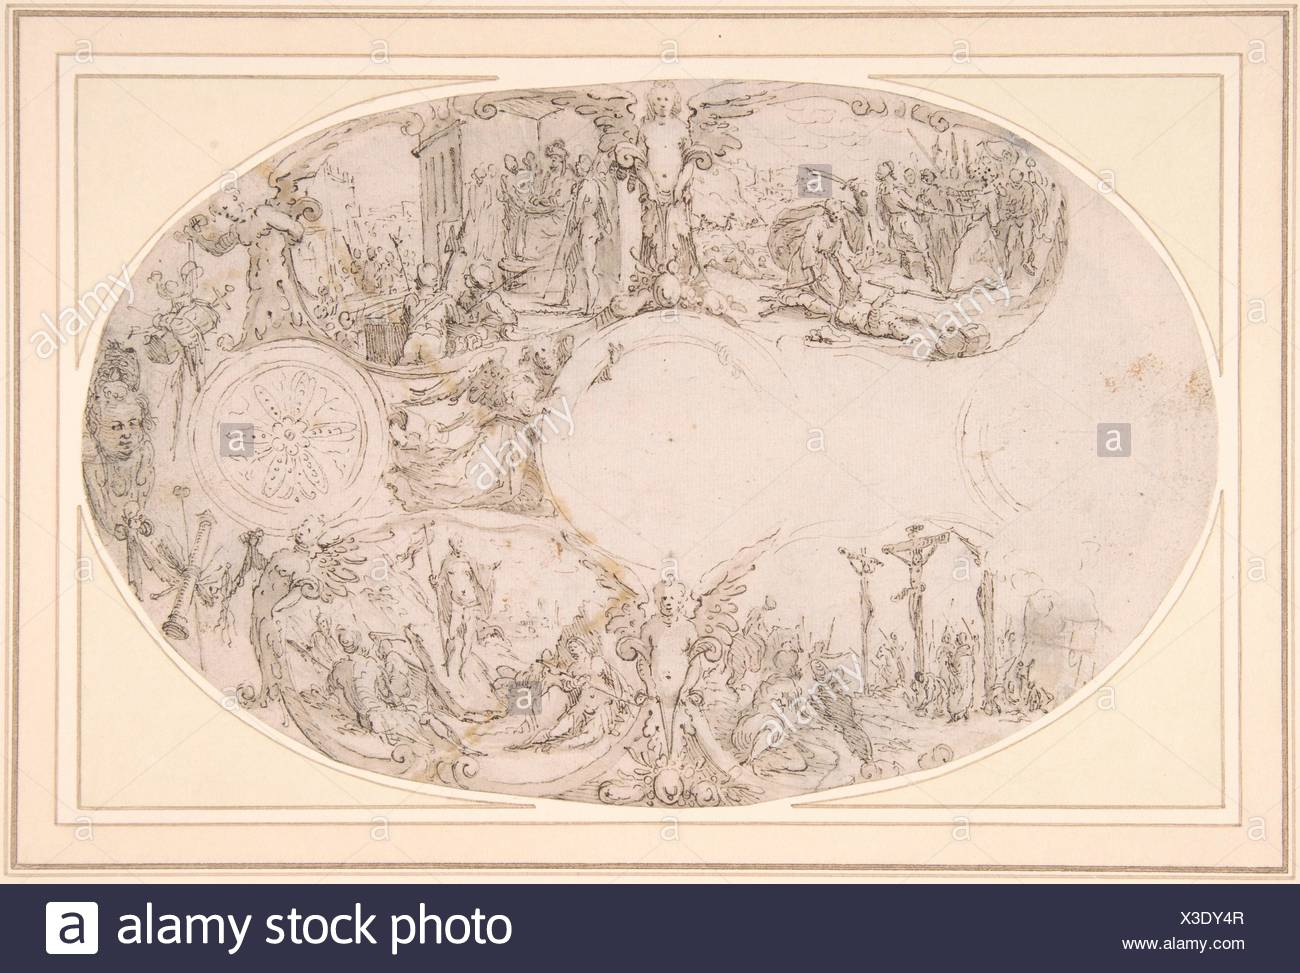 Design for a Silver Vessel with Scenes from the Passion of Christ. Artist: Paulus Willemsz. van Vianen (Netherlandish, Utrecht ca. 1570-ca. 1613/14 Stock Photo